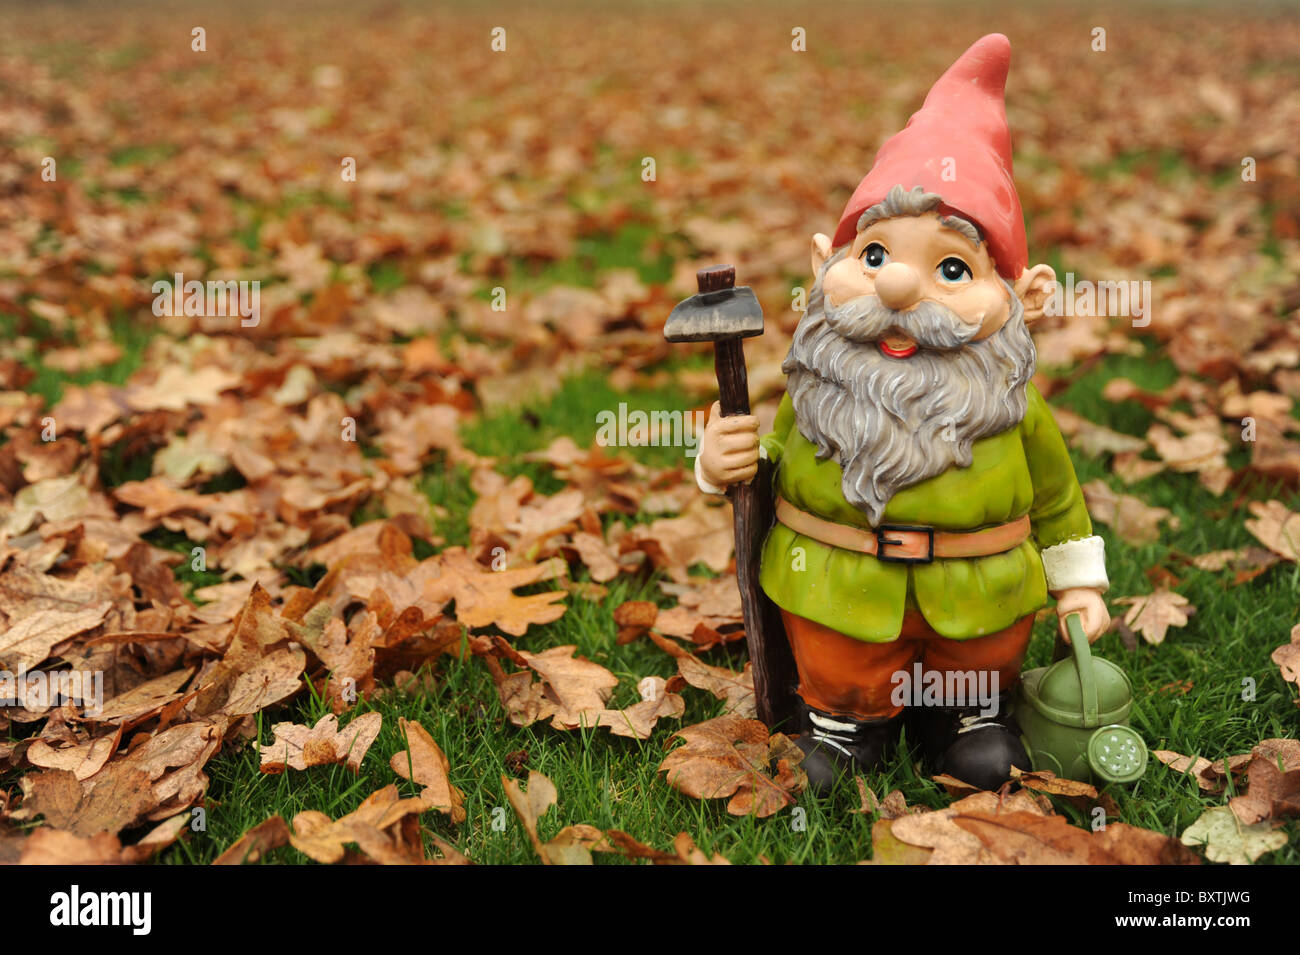 Garden Gnome Leaves Stock Photos & Garden Gnome Leaves Stock Images ...